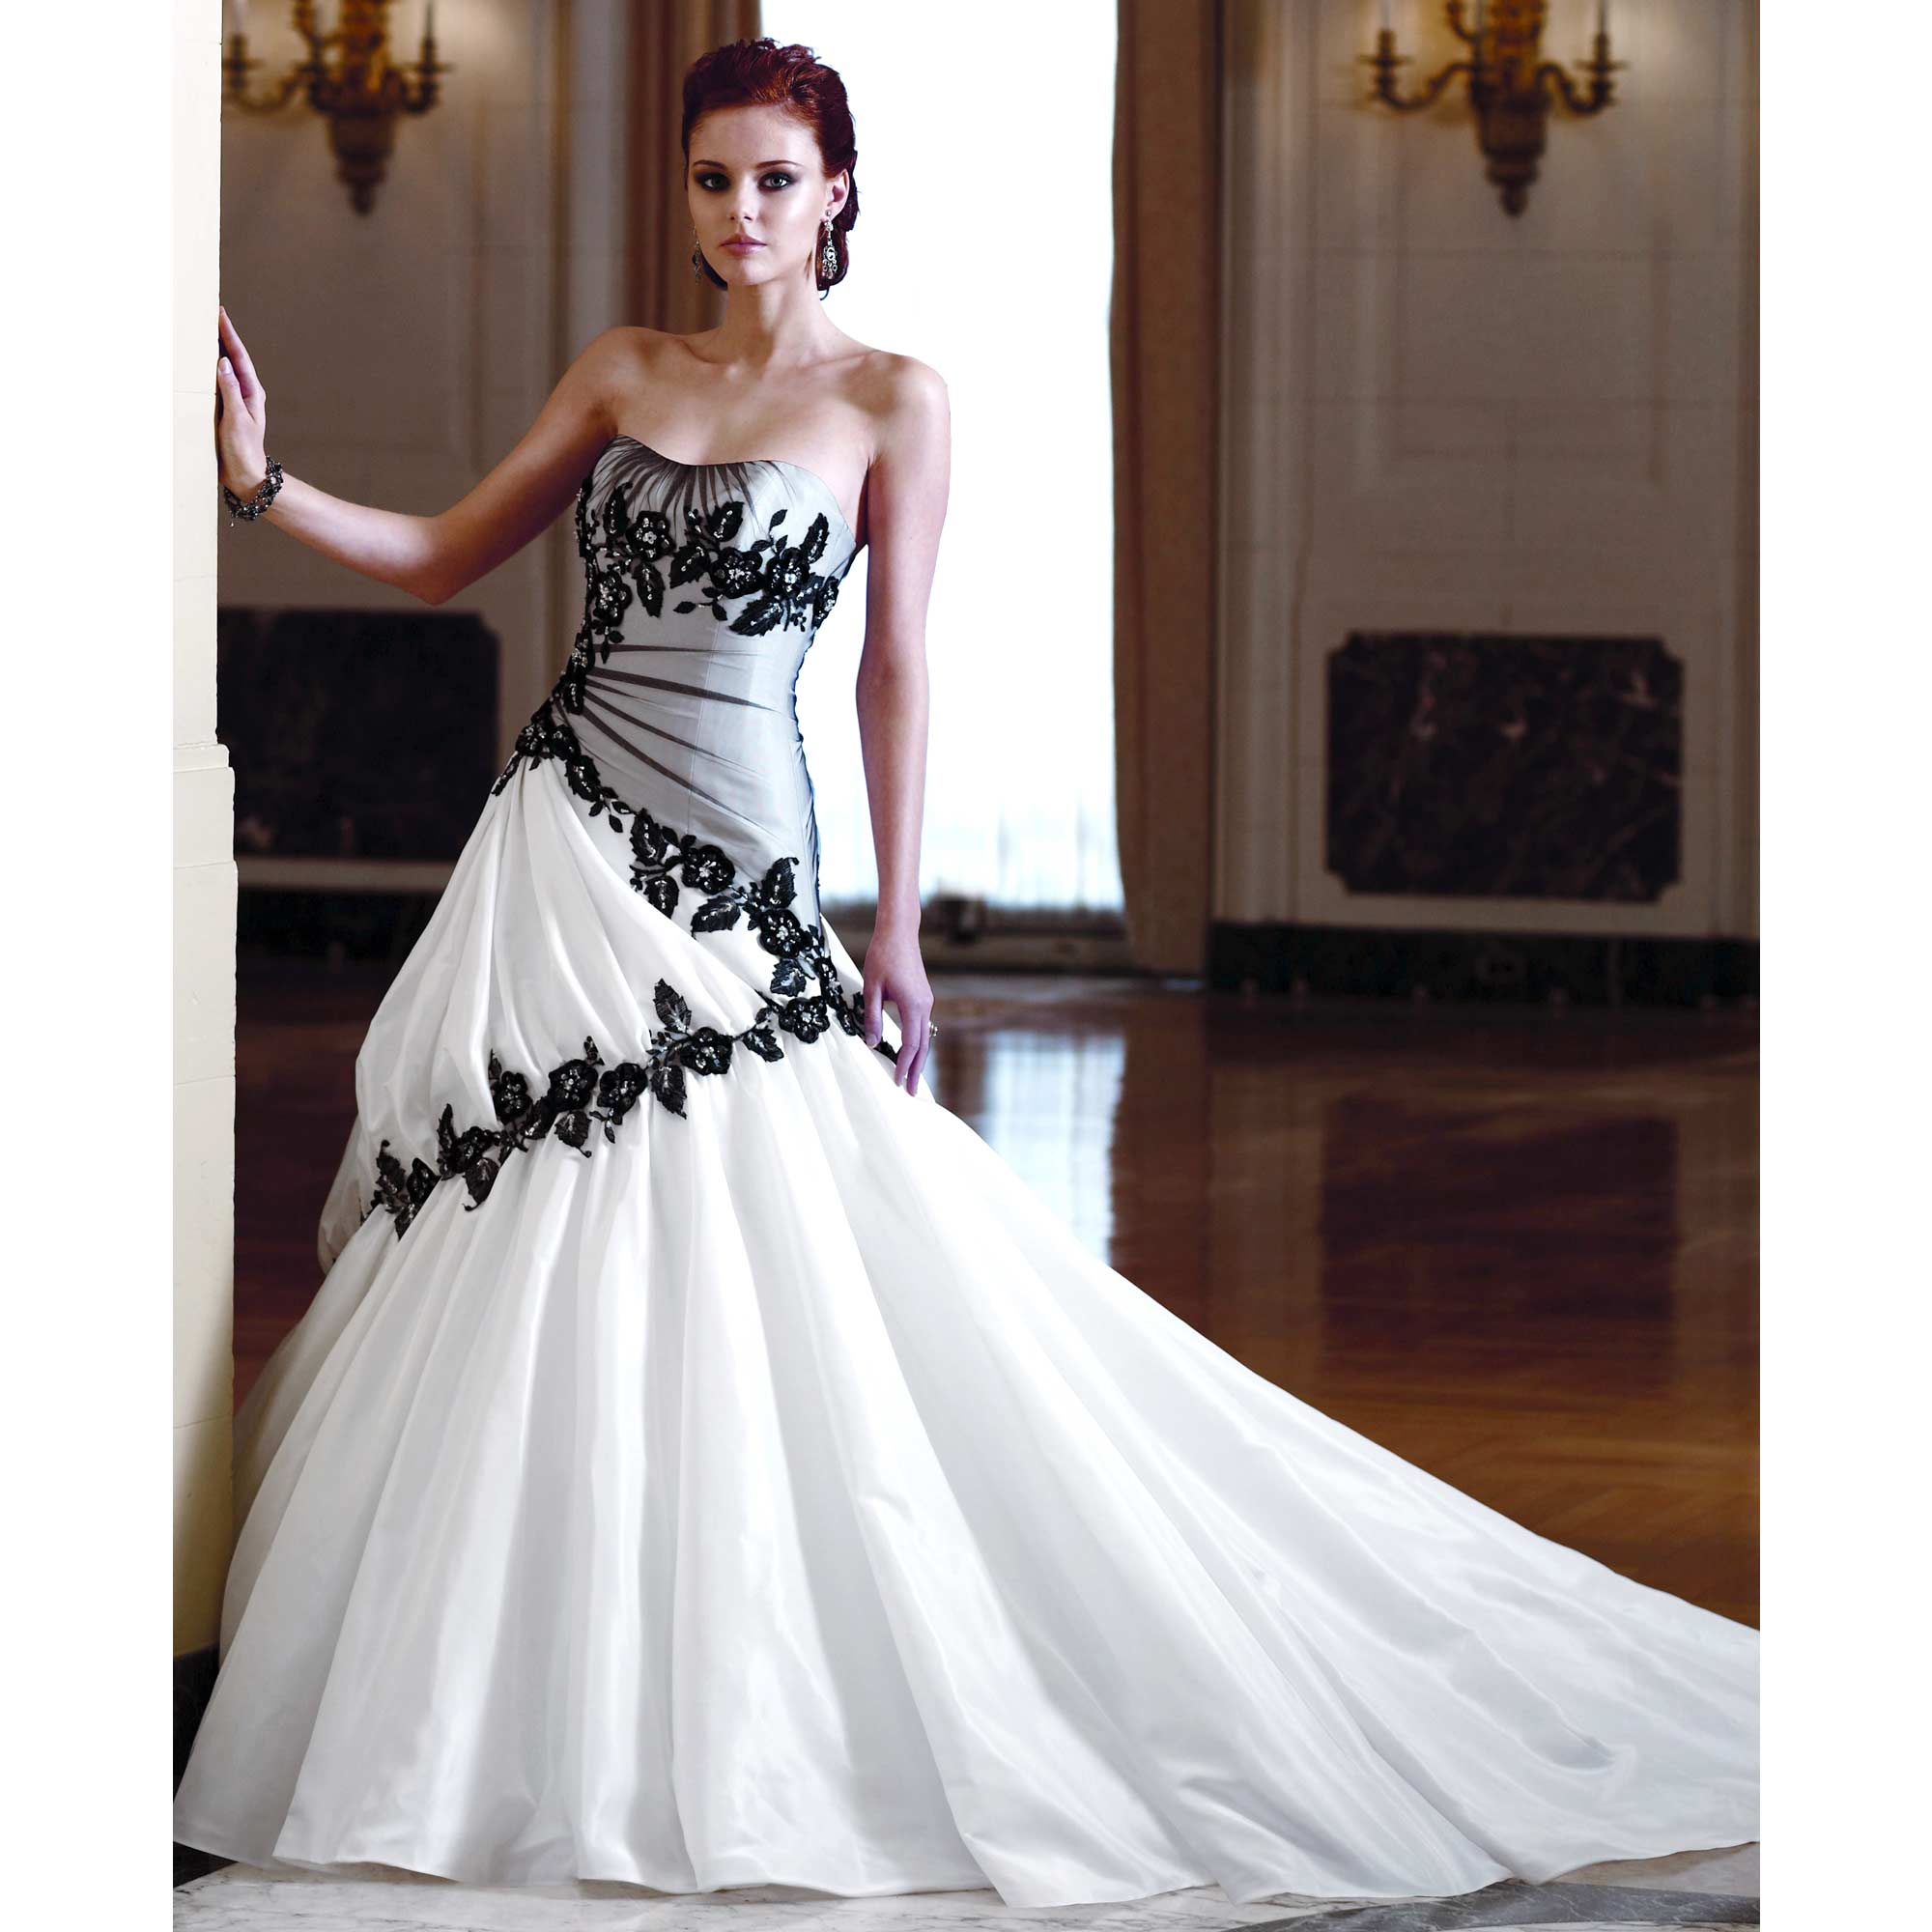 Ball gown black white wedding dress wedding plan ideas for Image of wedding dresses